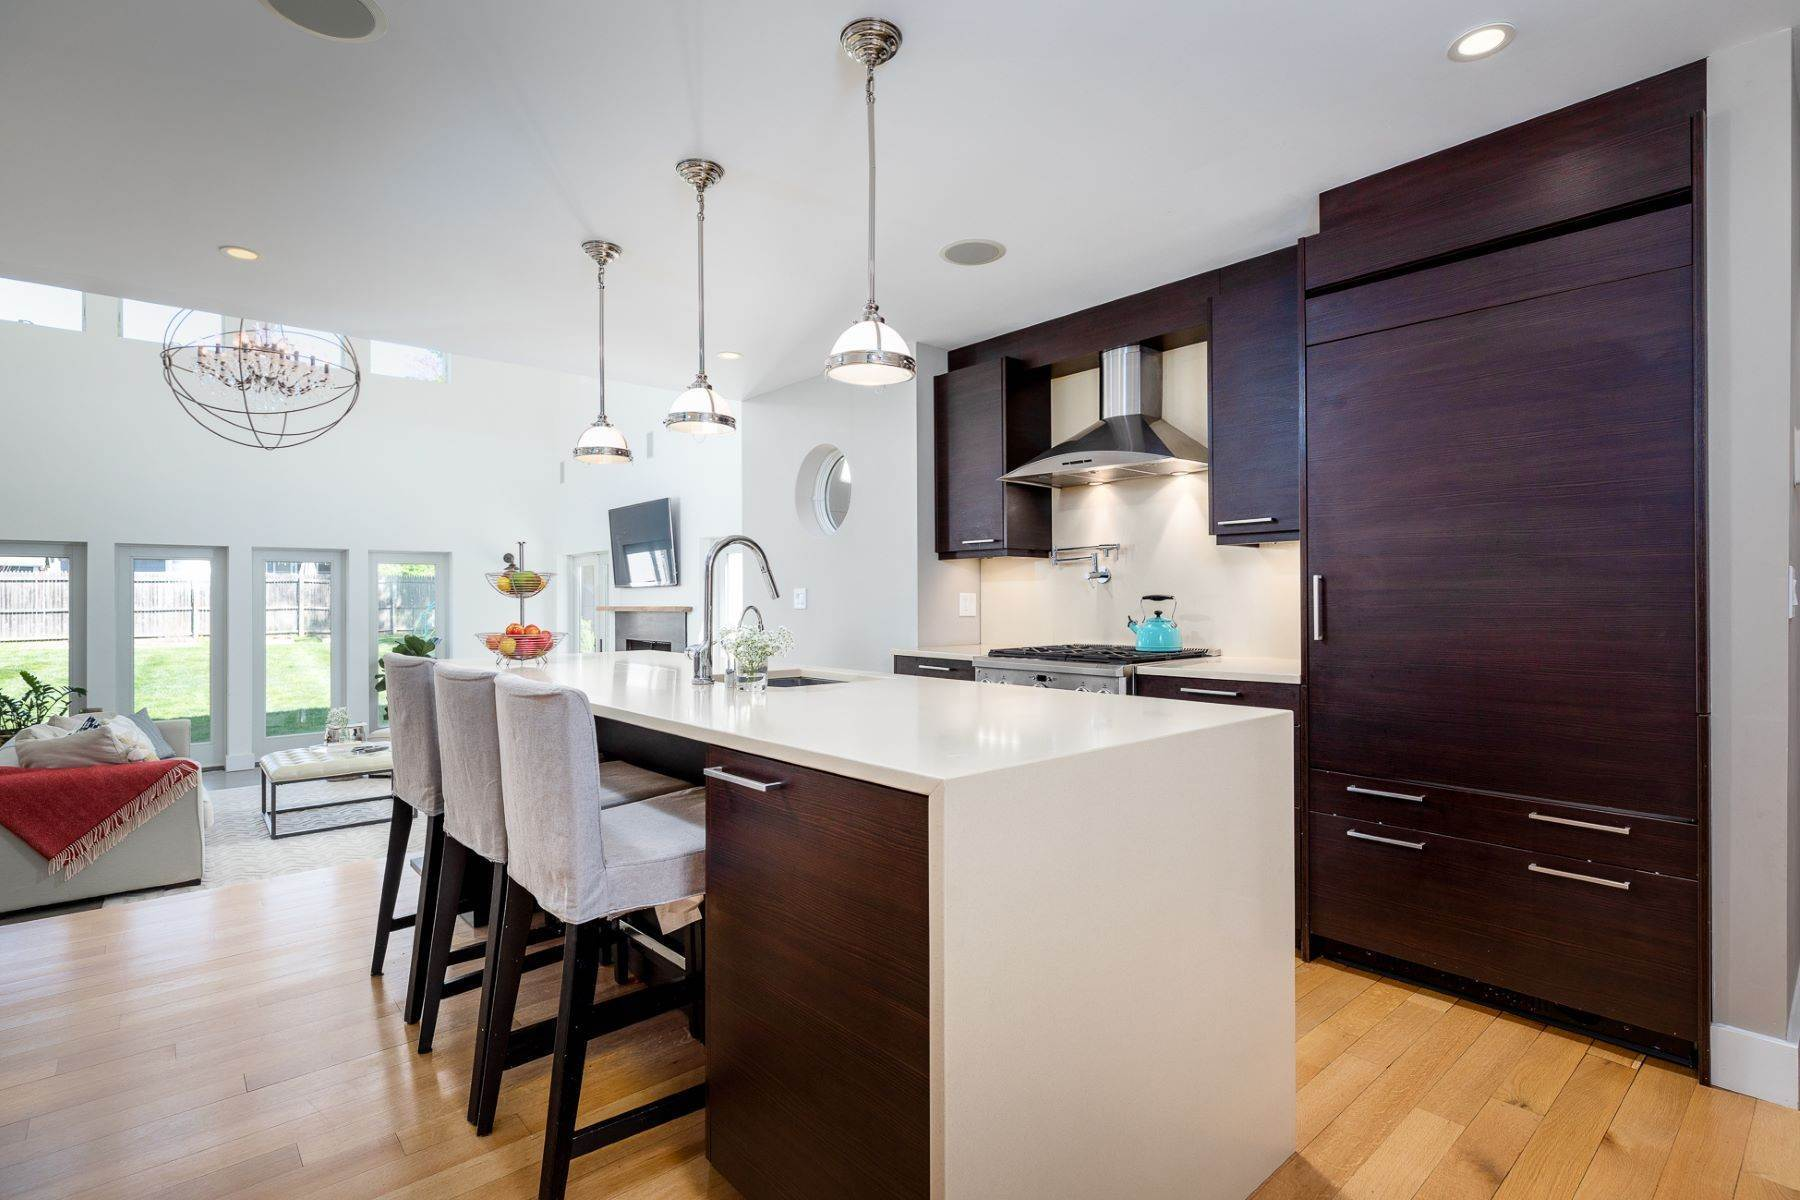 9. Single Family Homes for Sale at A Modern Transformation by Mercer General Works 22 Fisher Avenue, Princeton, New Jersey 08540 United States